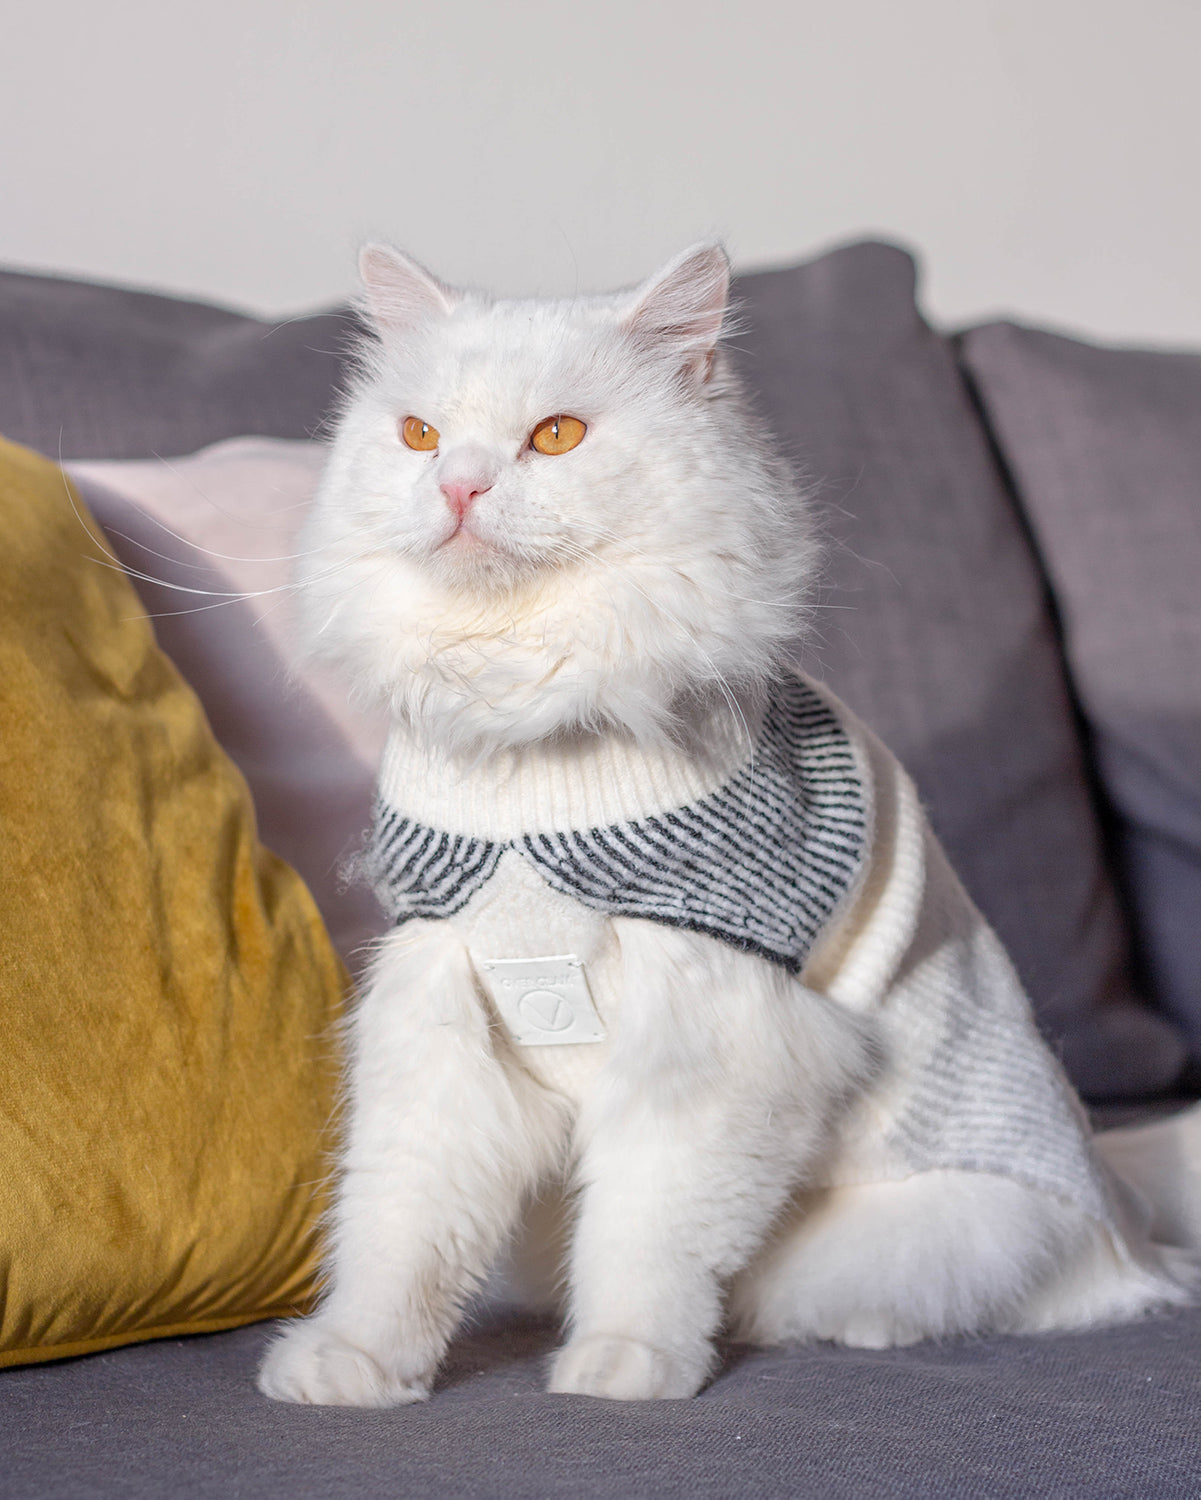 A cat with an OverGlam jumper posing on a grey couch